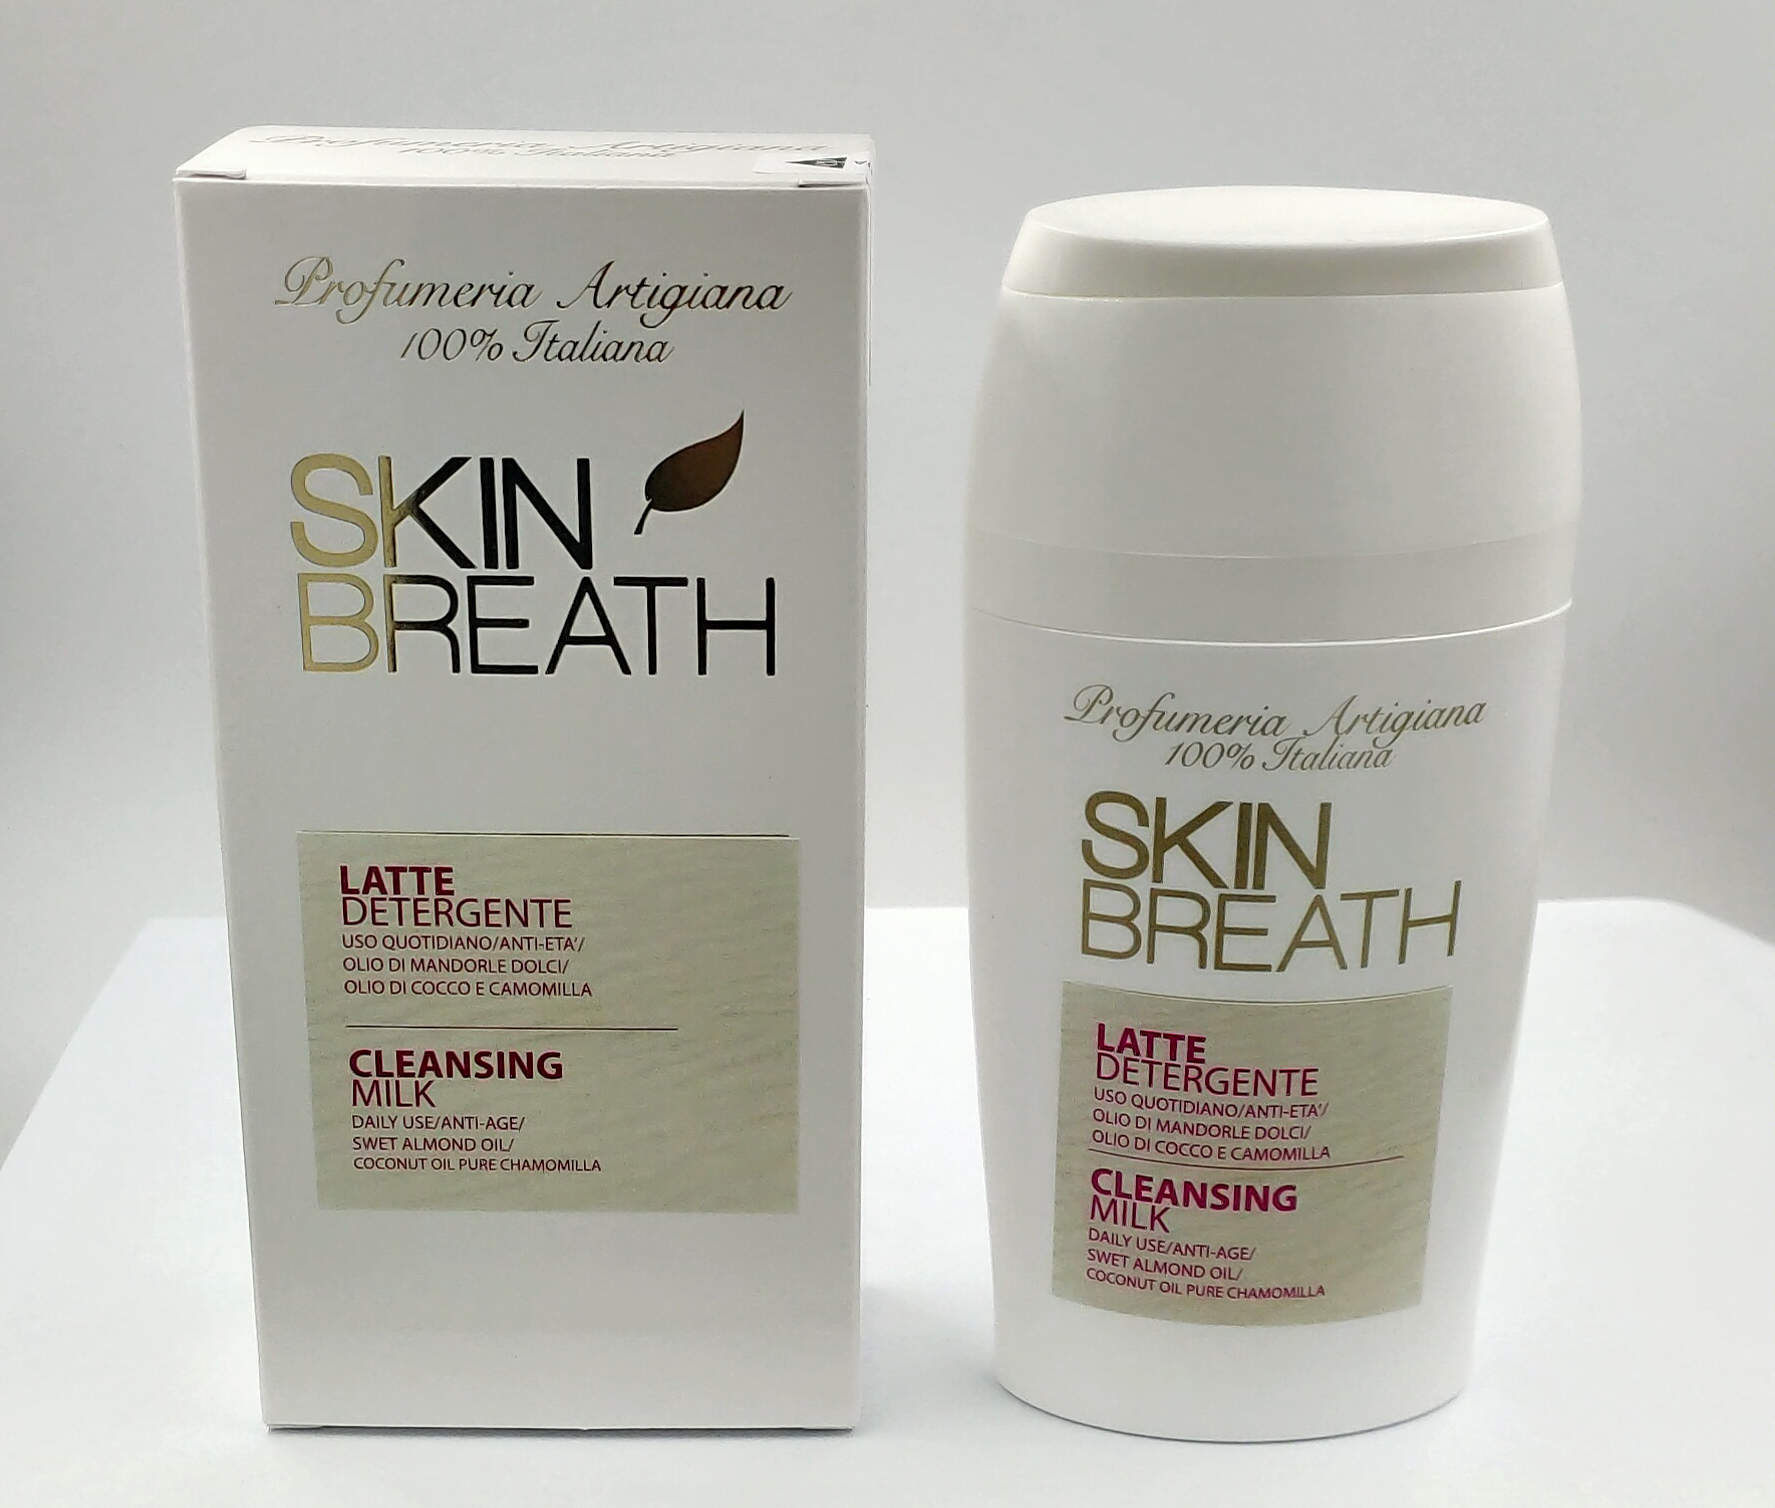 SKIN BREATH LATTE DETERGENTE